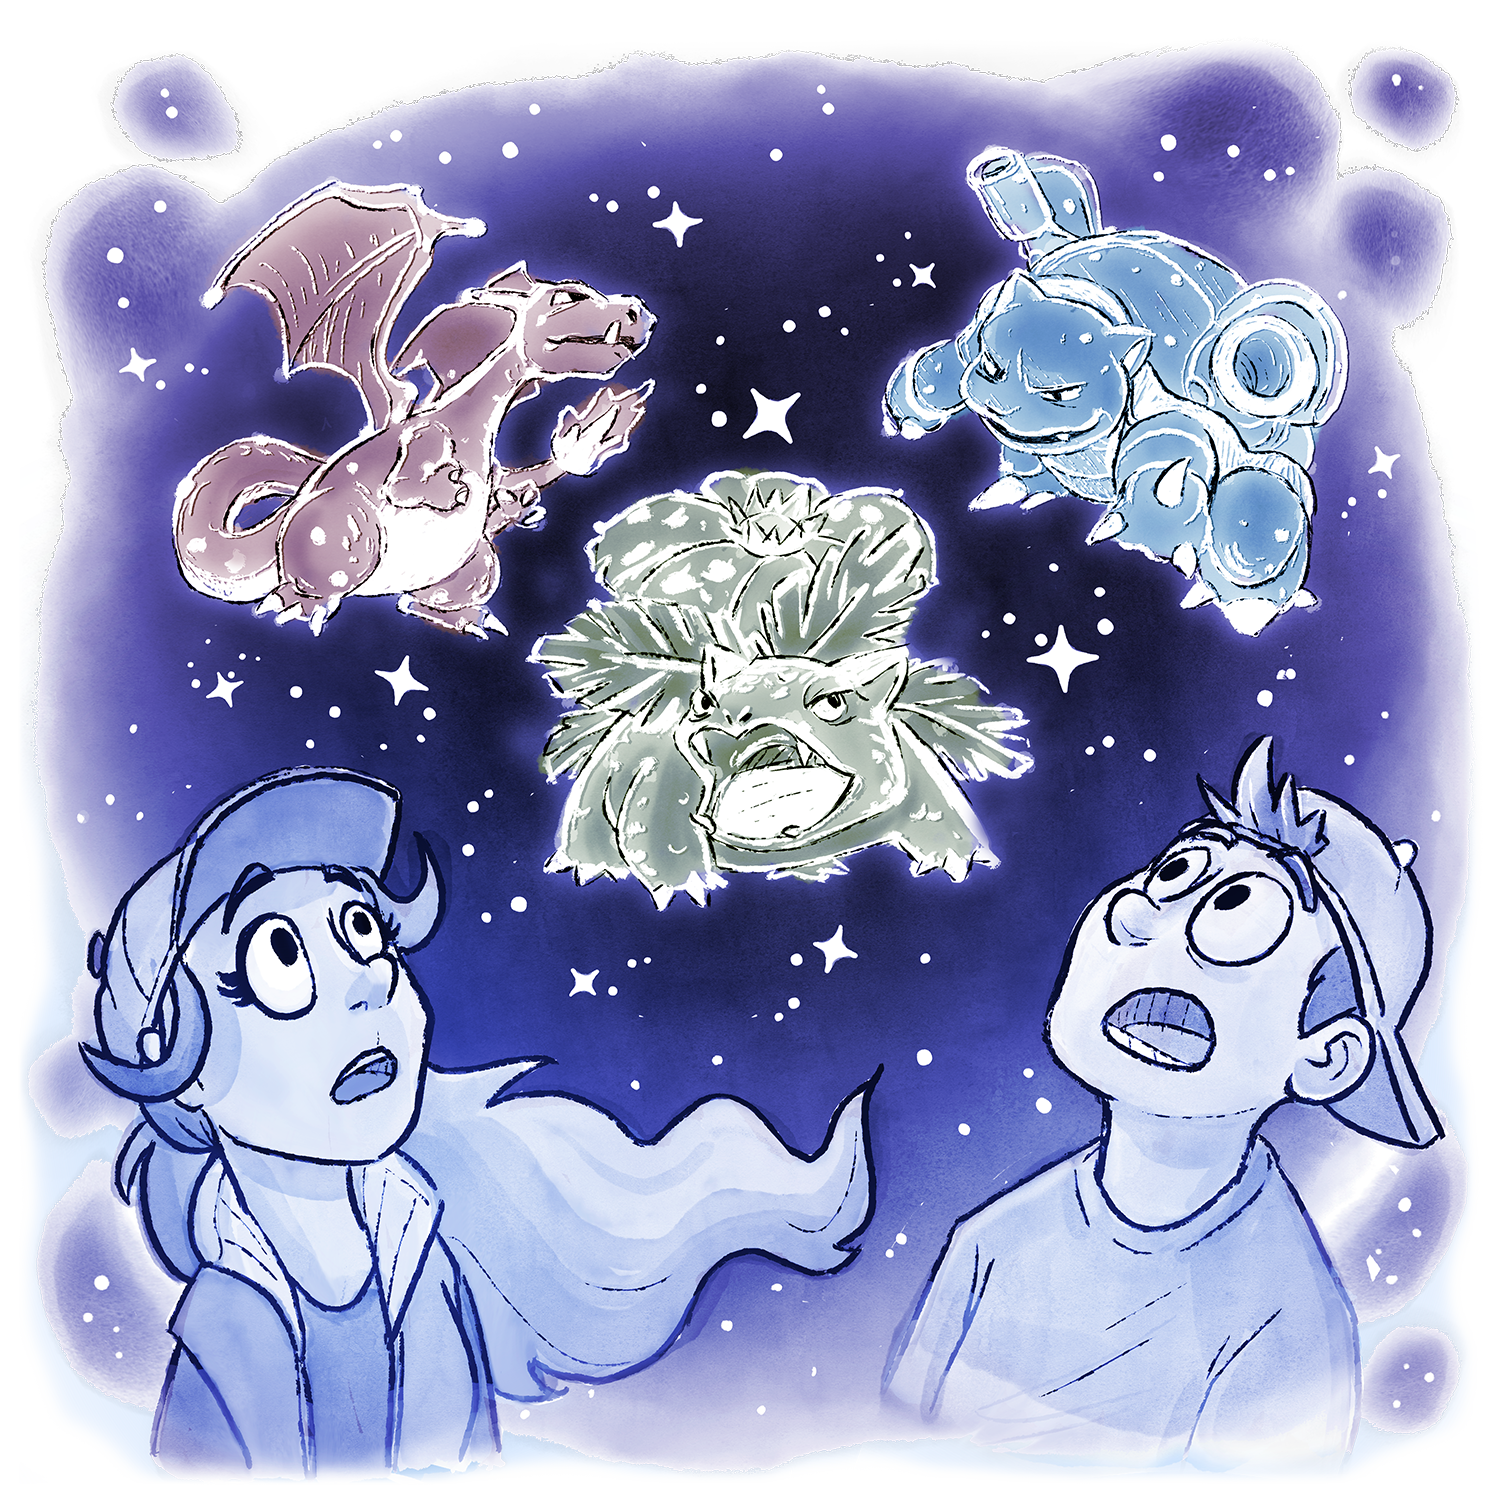 Candace and Skip are looking up at the stars, with Visions of Charizard, Blastoise, and Venasaur appearing like constellations.